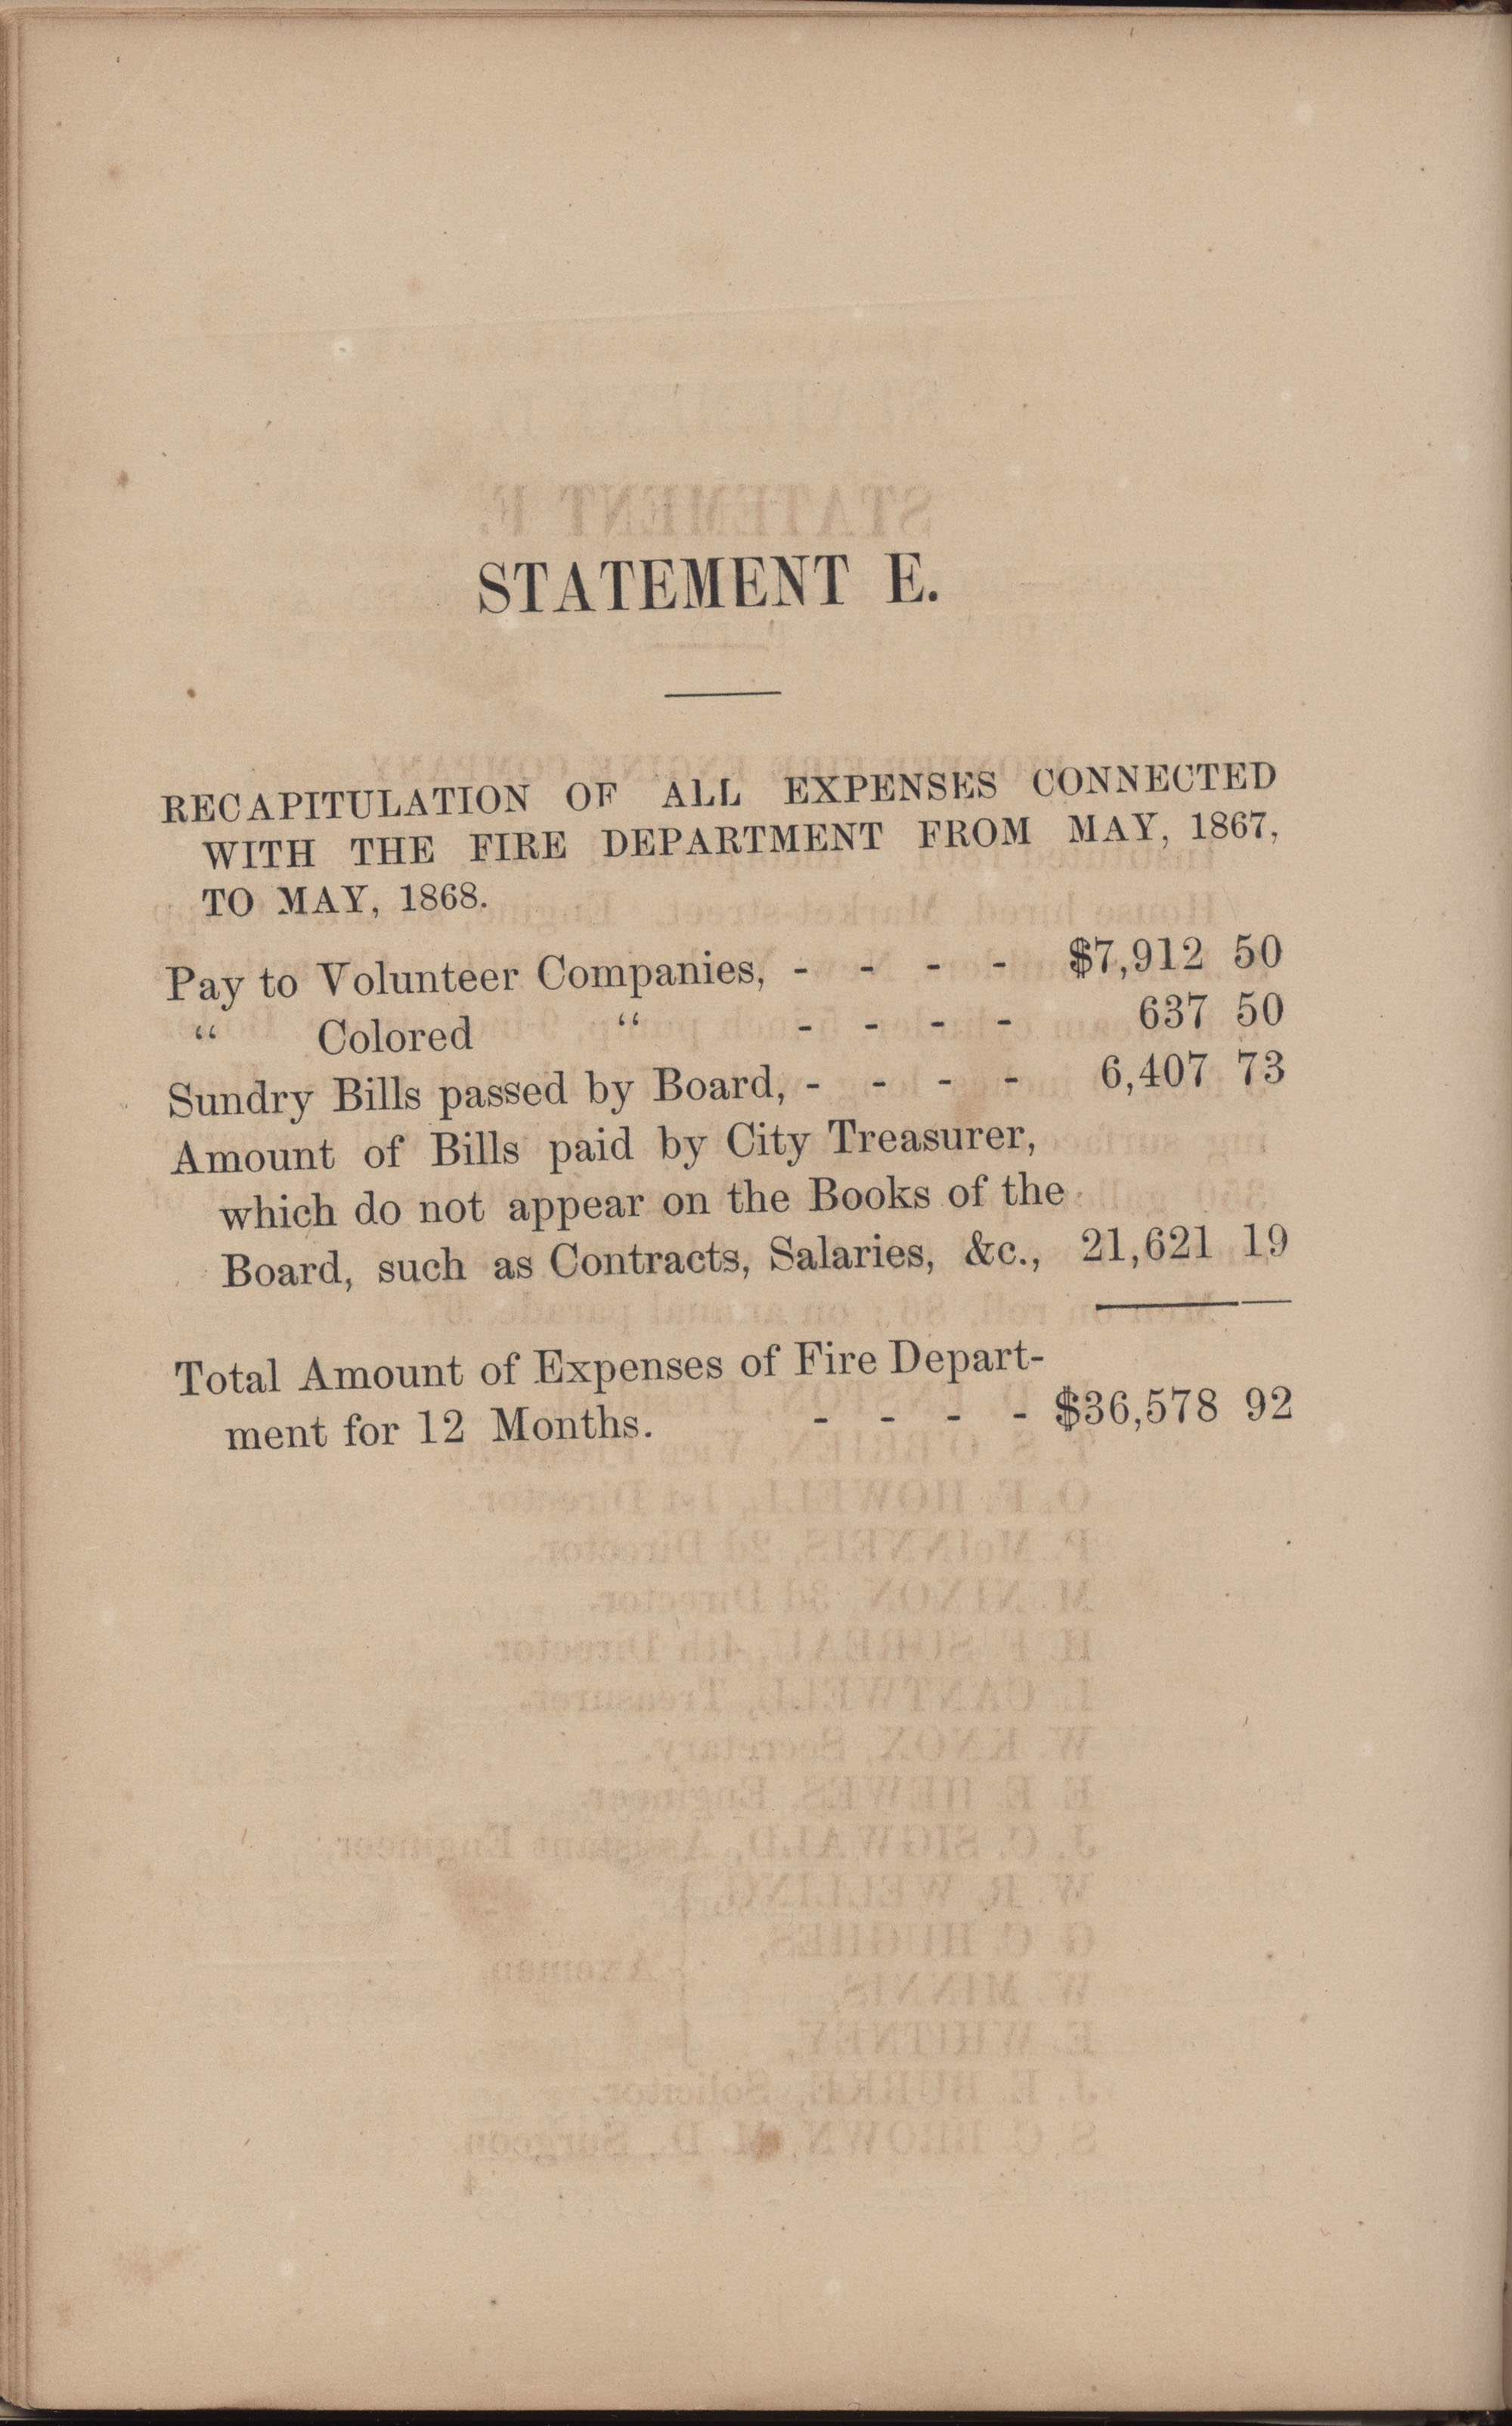 Annual Report of the Chief of the Fire Department of the City of Charleston, page 202